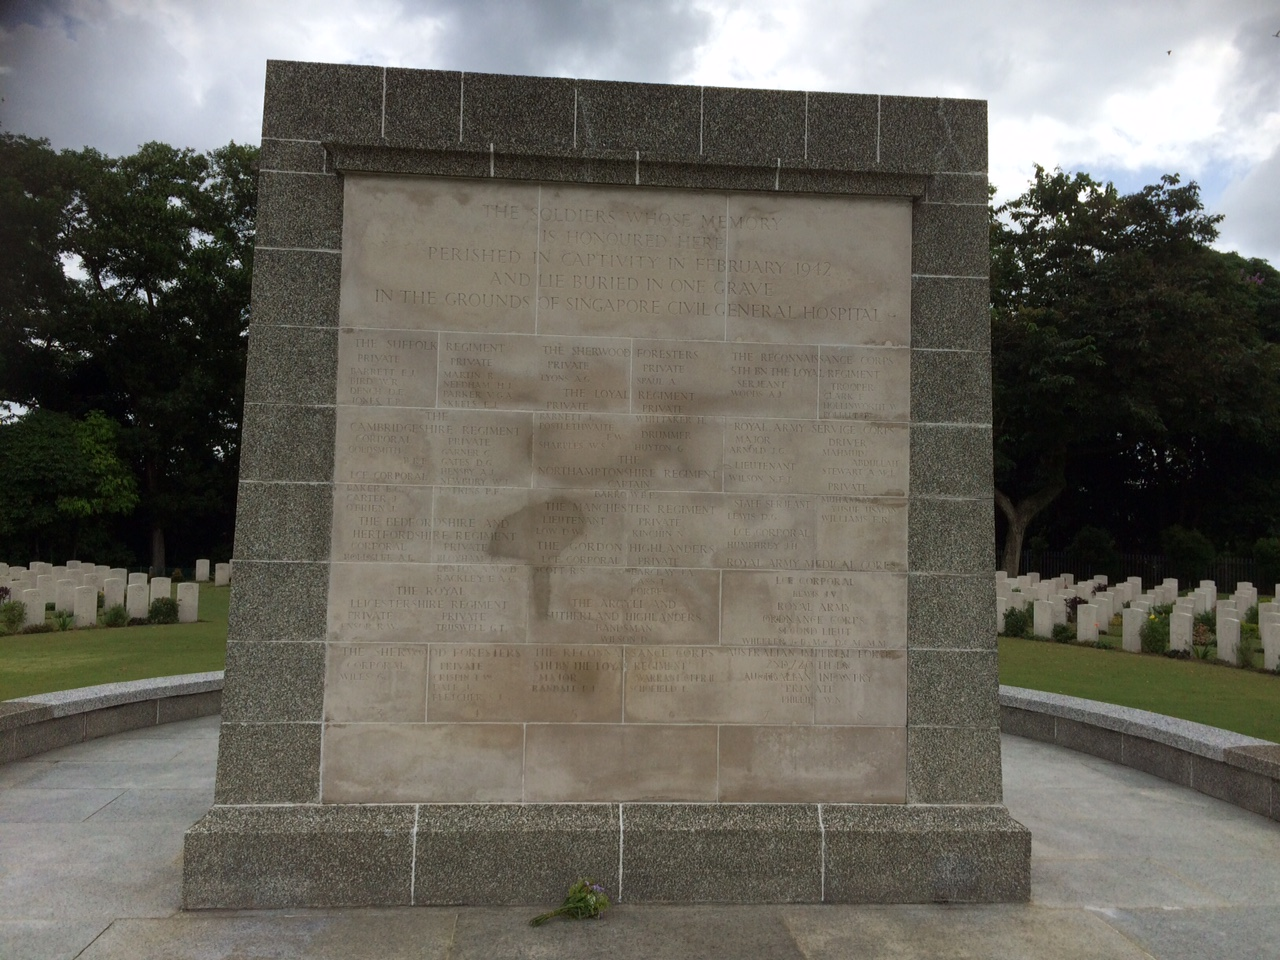 The Singapore Civil Hospital Grave Memorial